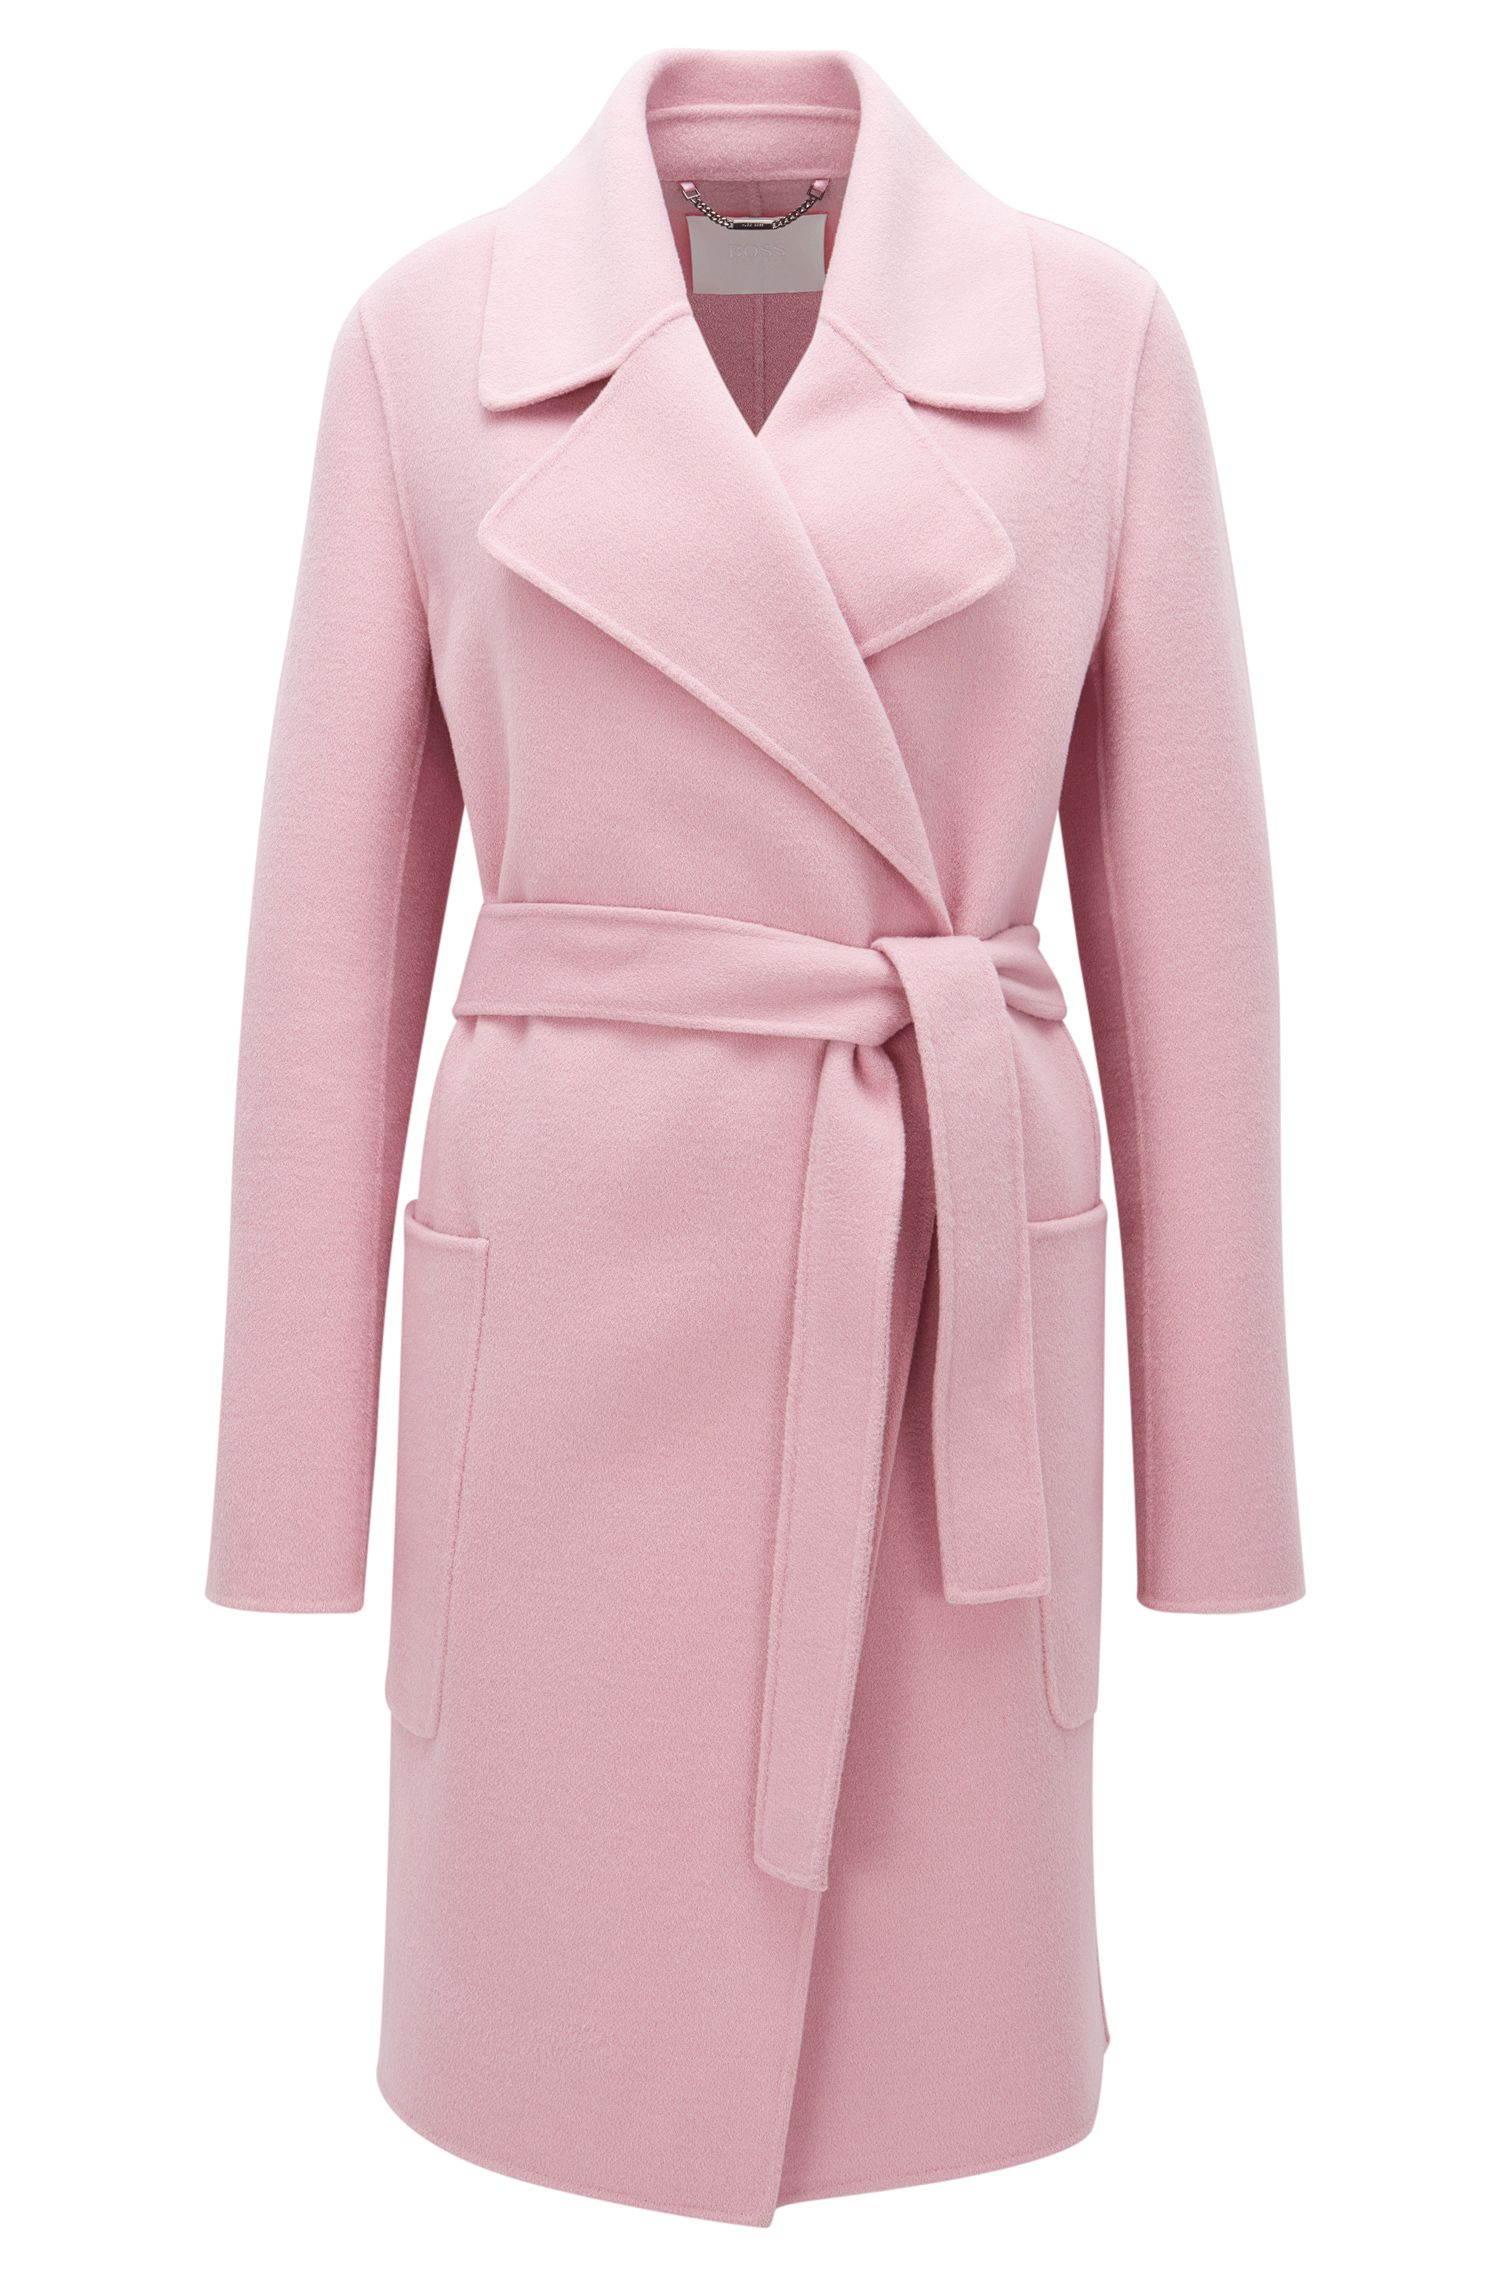 Relaxed-fit belted coat in virgin wool